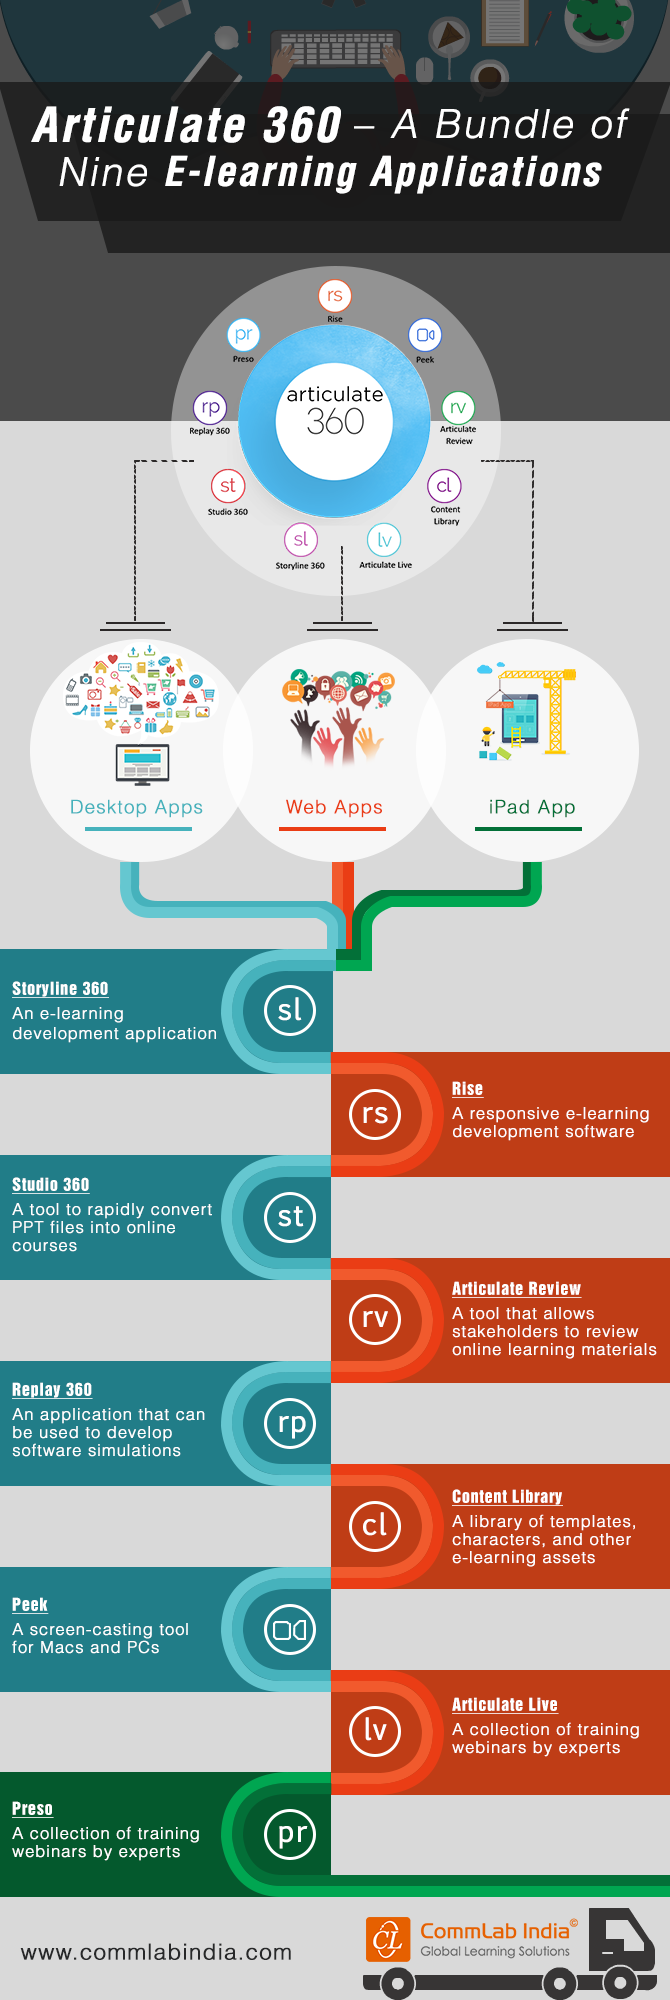 Articulate 360 - A Bundle of Nine E-learning Applications [Infographic]